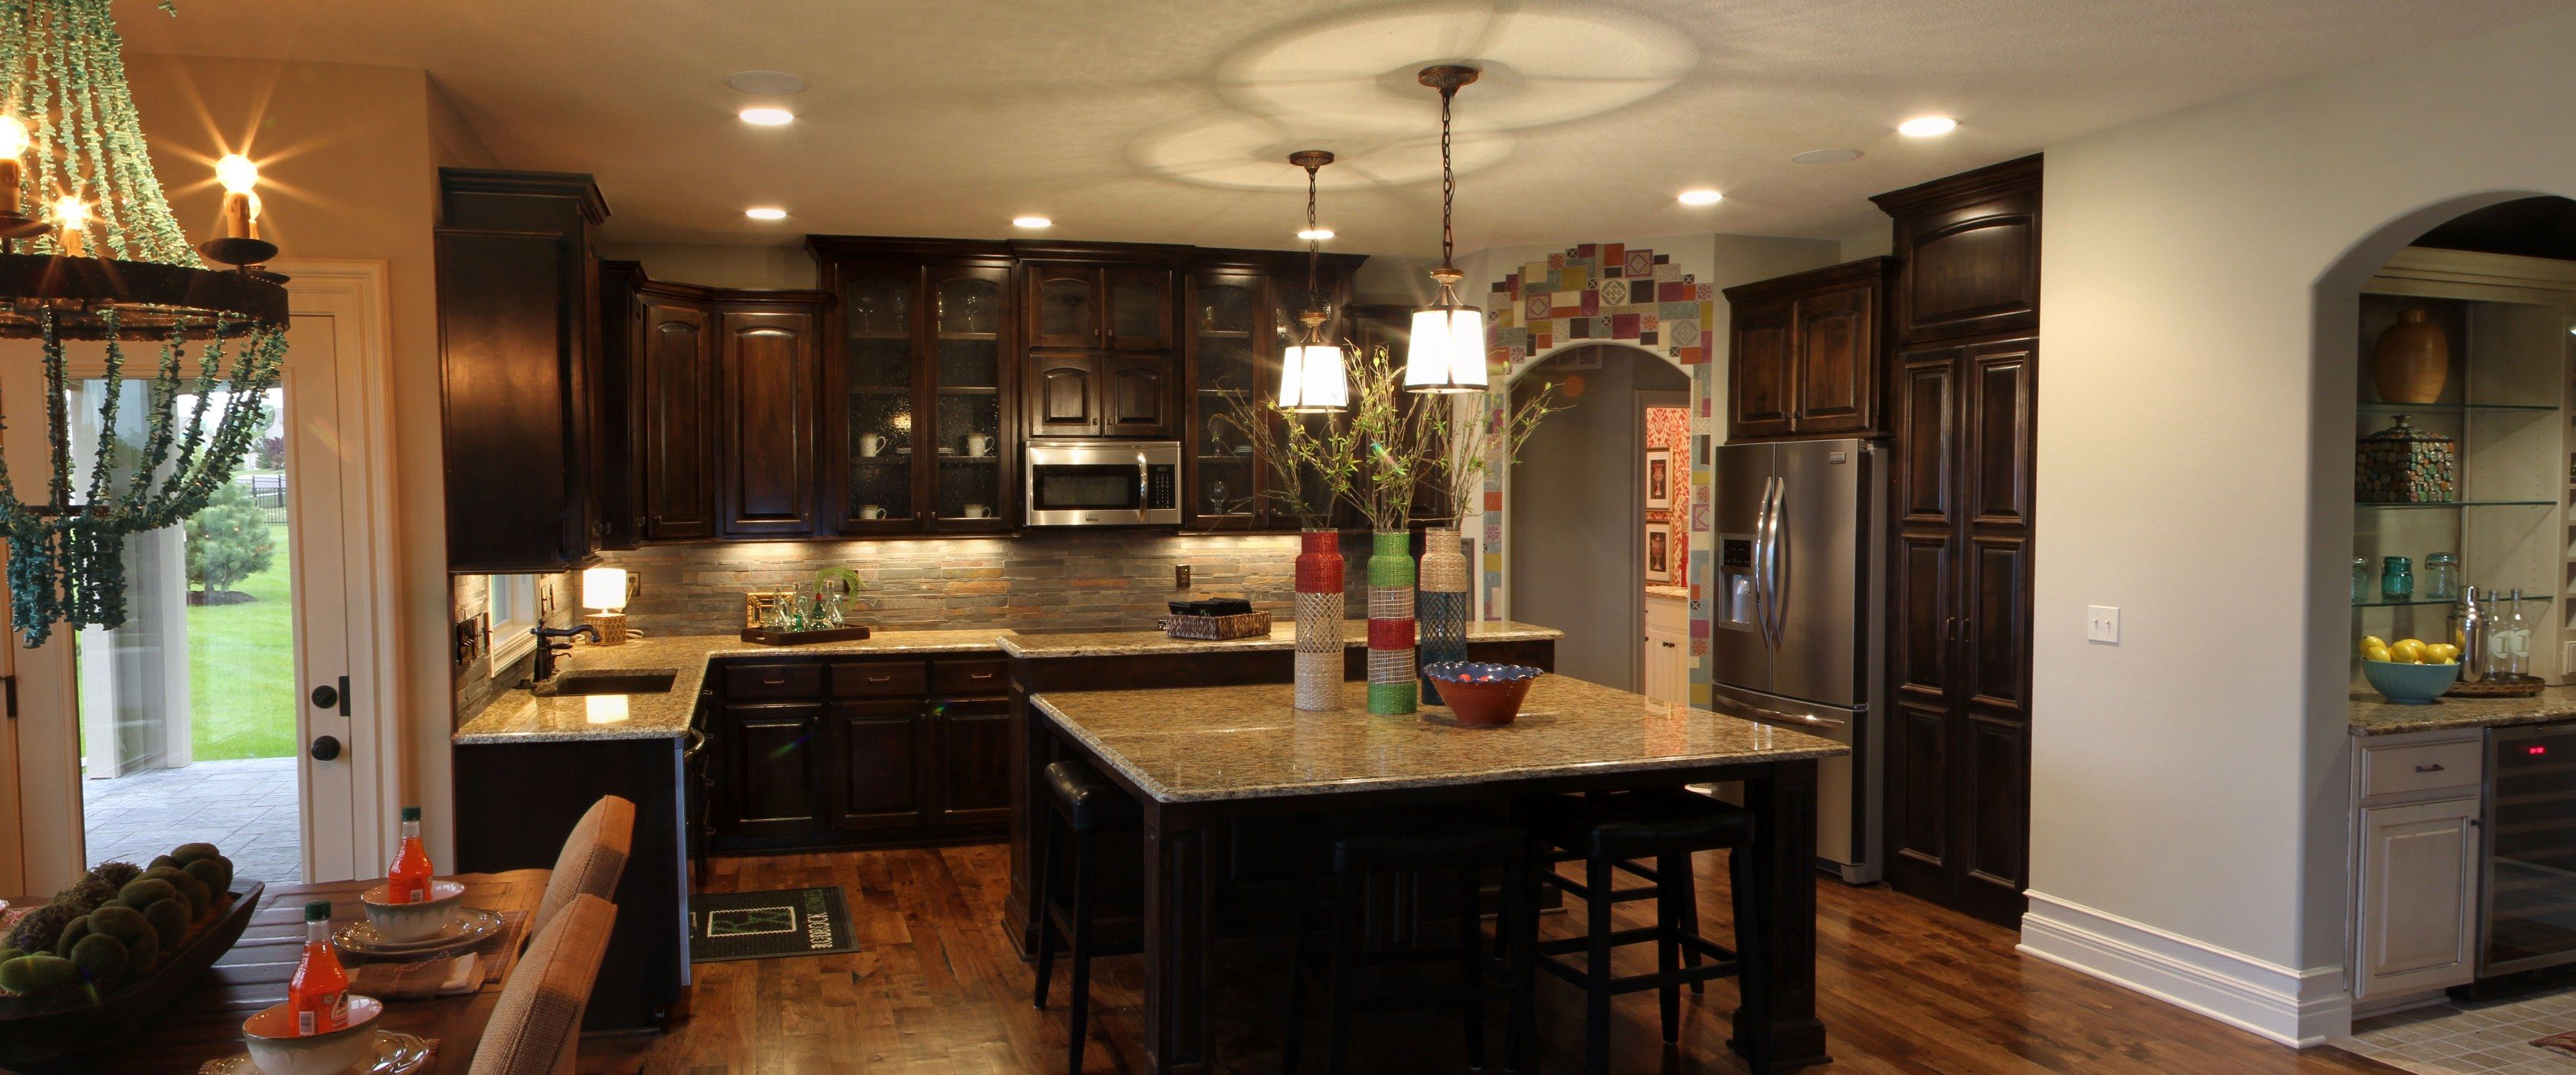 Luxury homes interior home design photo pictures model also pin by the foth family on lighting  electrical pinterest rh